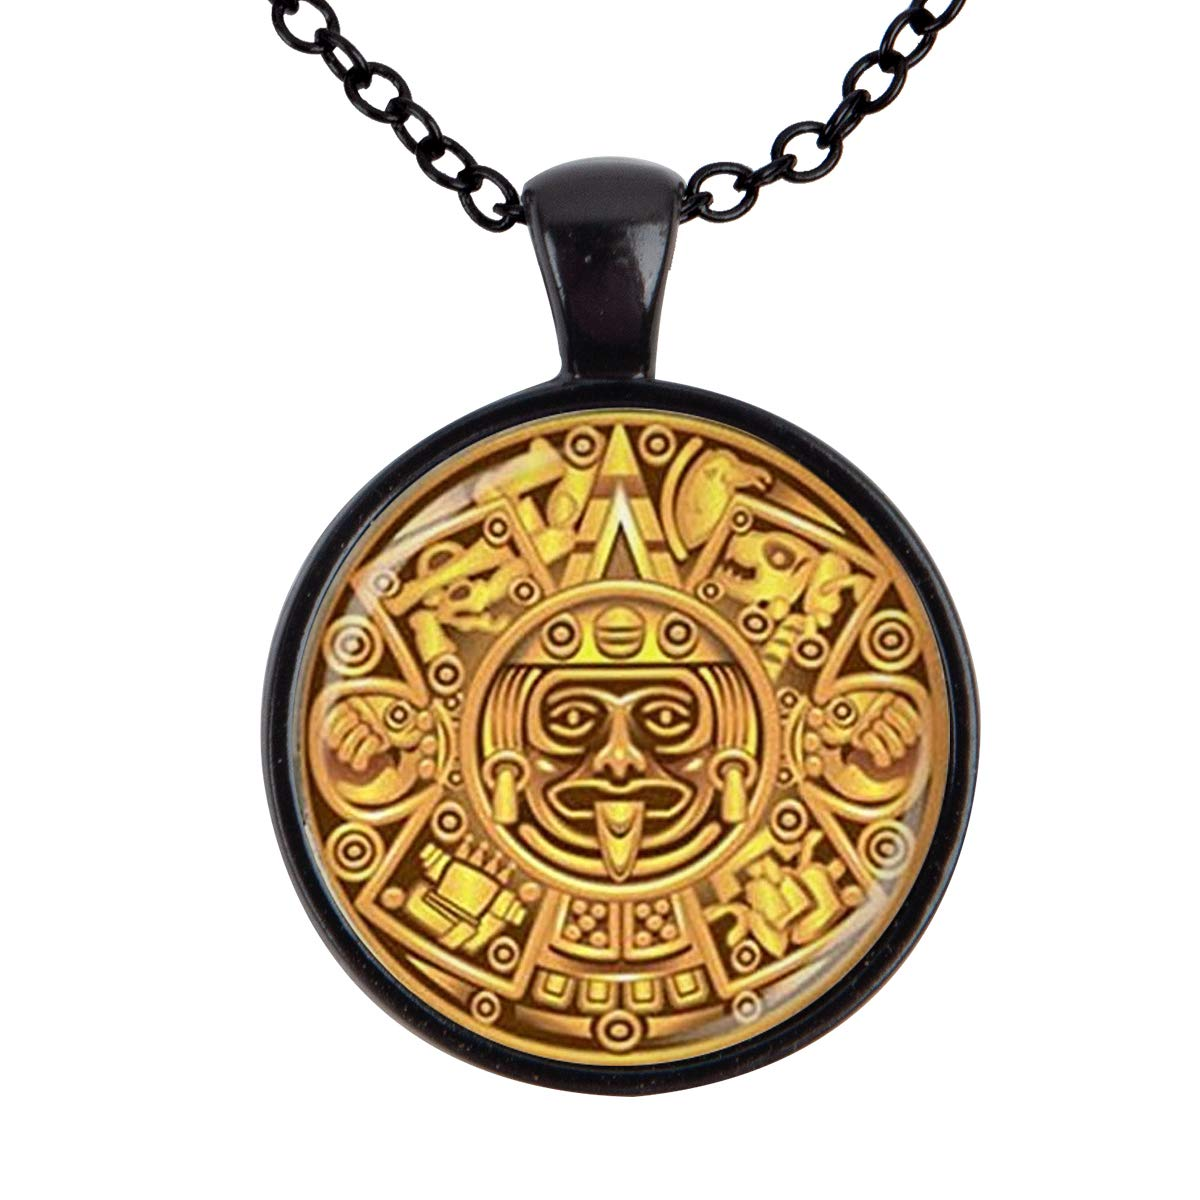 Family Decor Our Motif The Egyptian Pharaoh Pendant Necklace Cabochon Glass Vintage Bronze Chain Necklace Jewelry Handmade